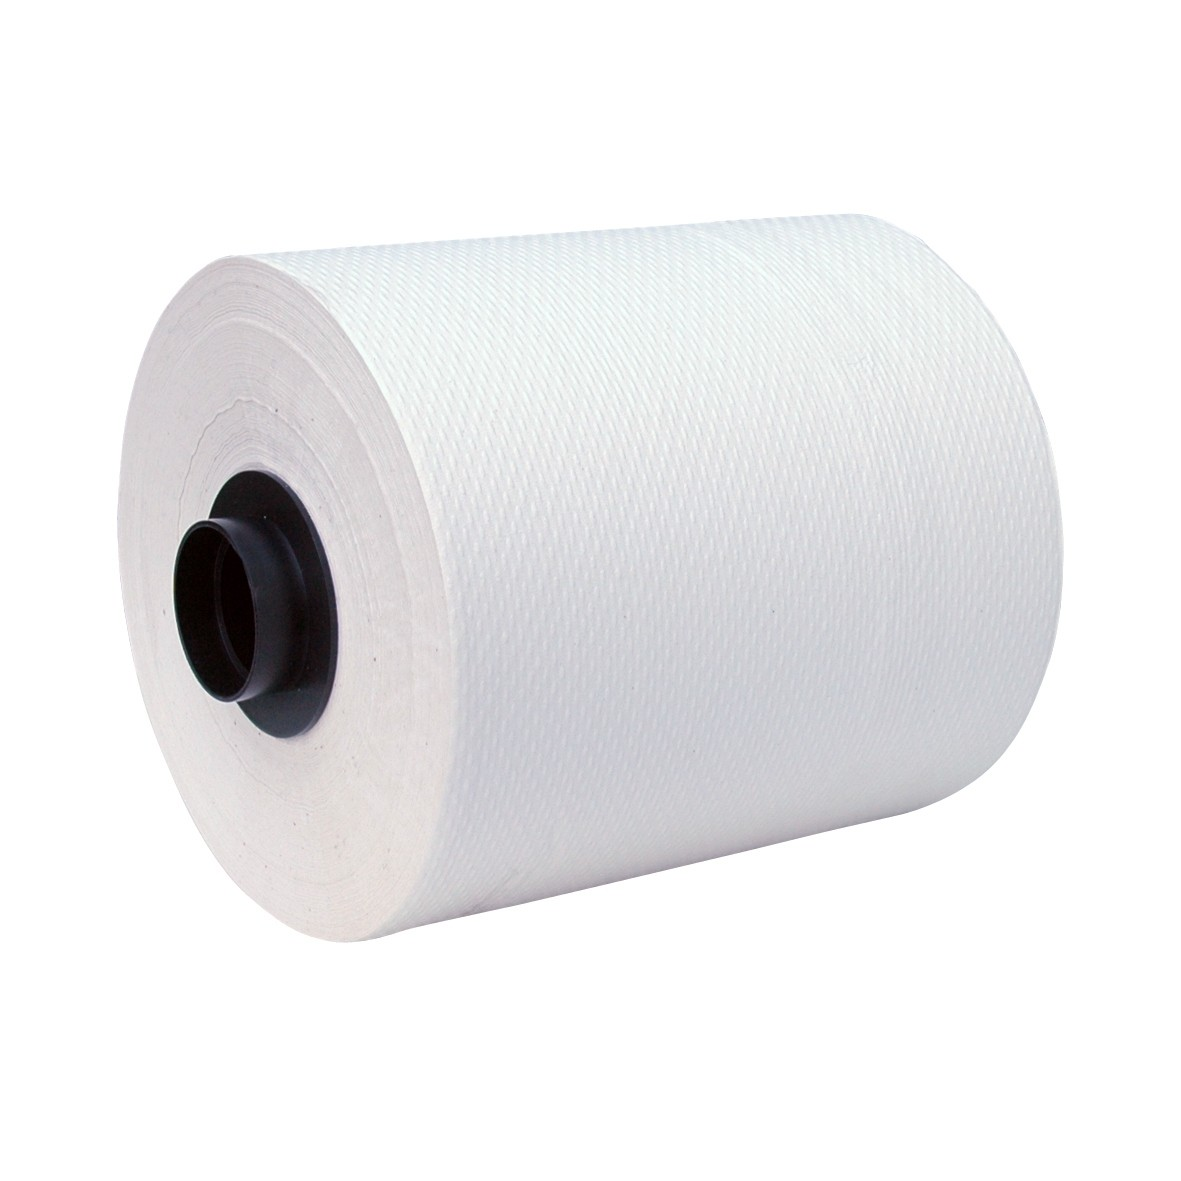 MTS Euromotion eco handdoekrol cellulose - 2 laags - 6x140 meter